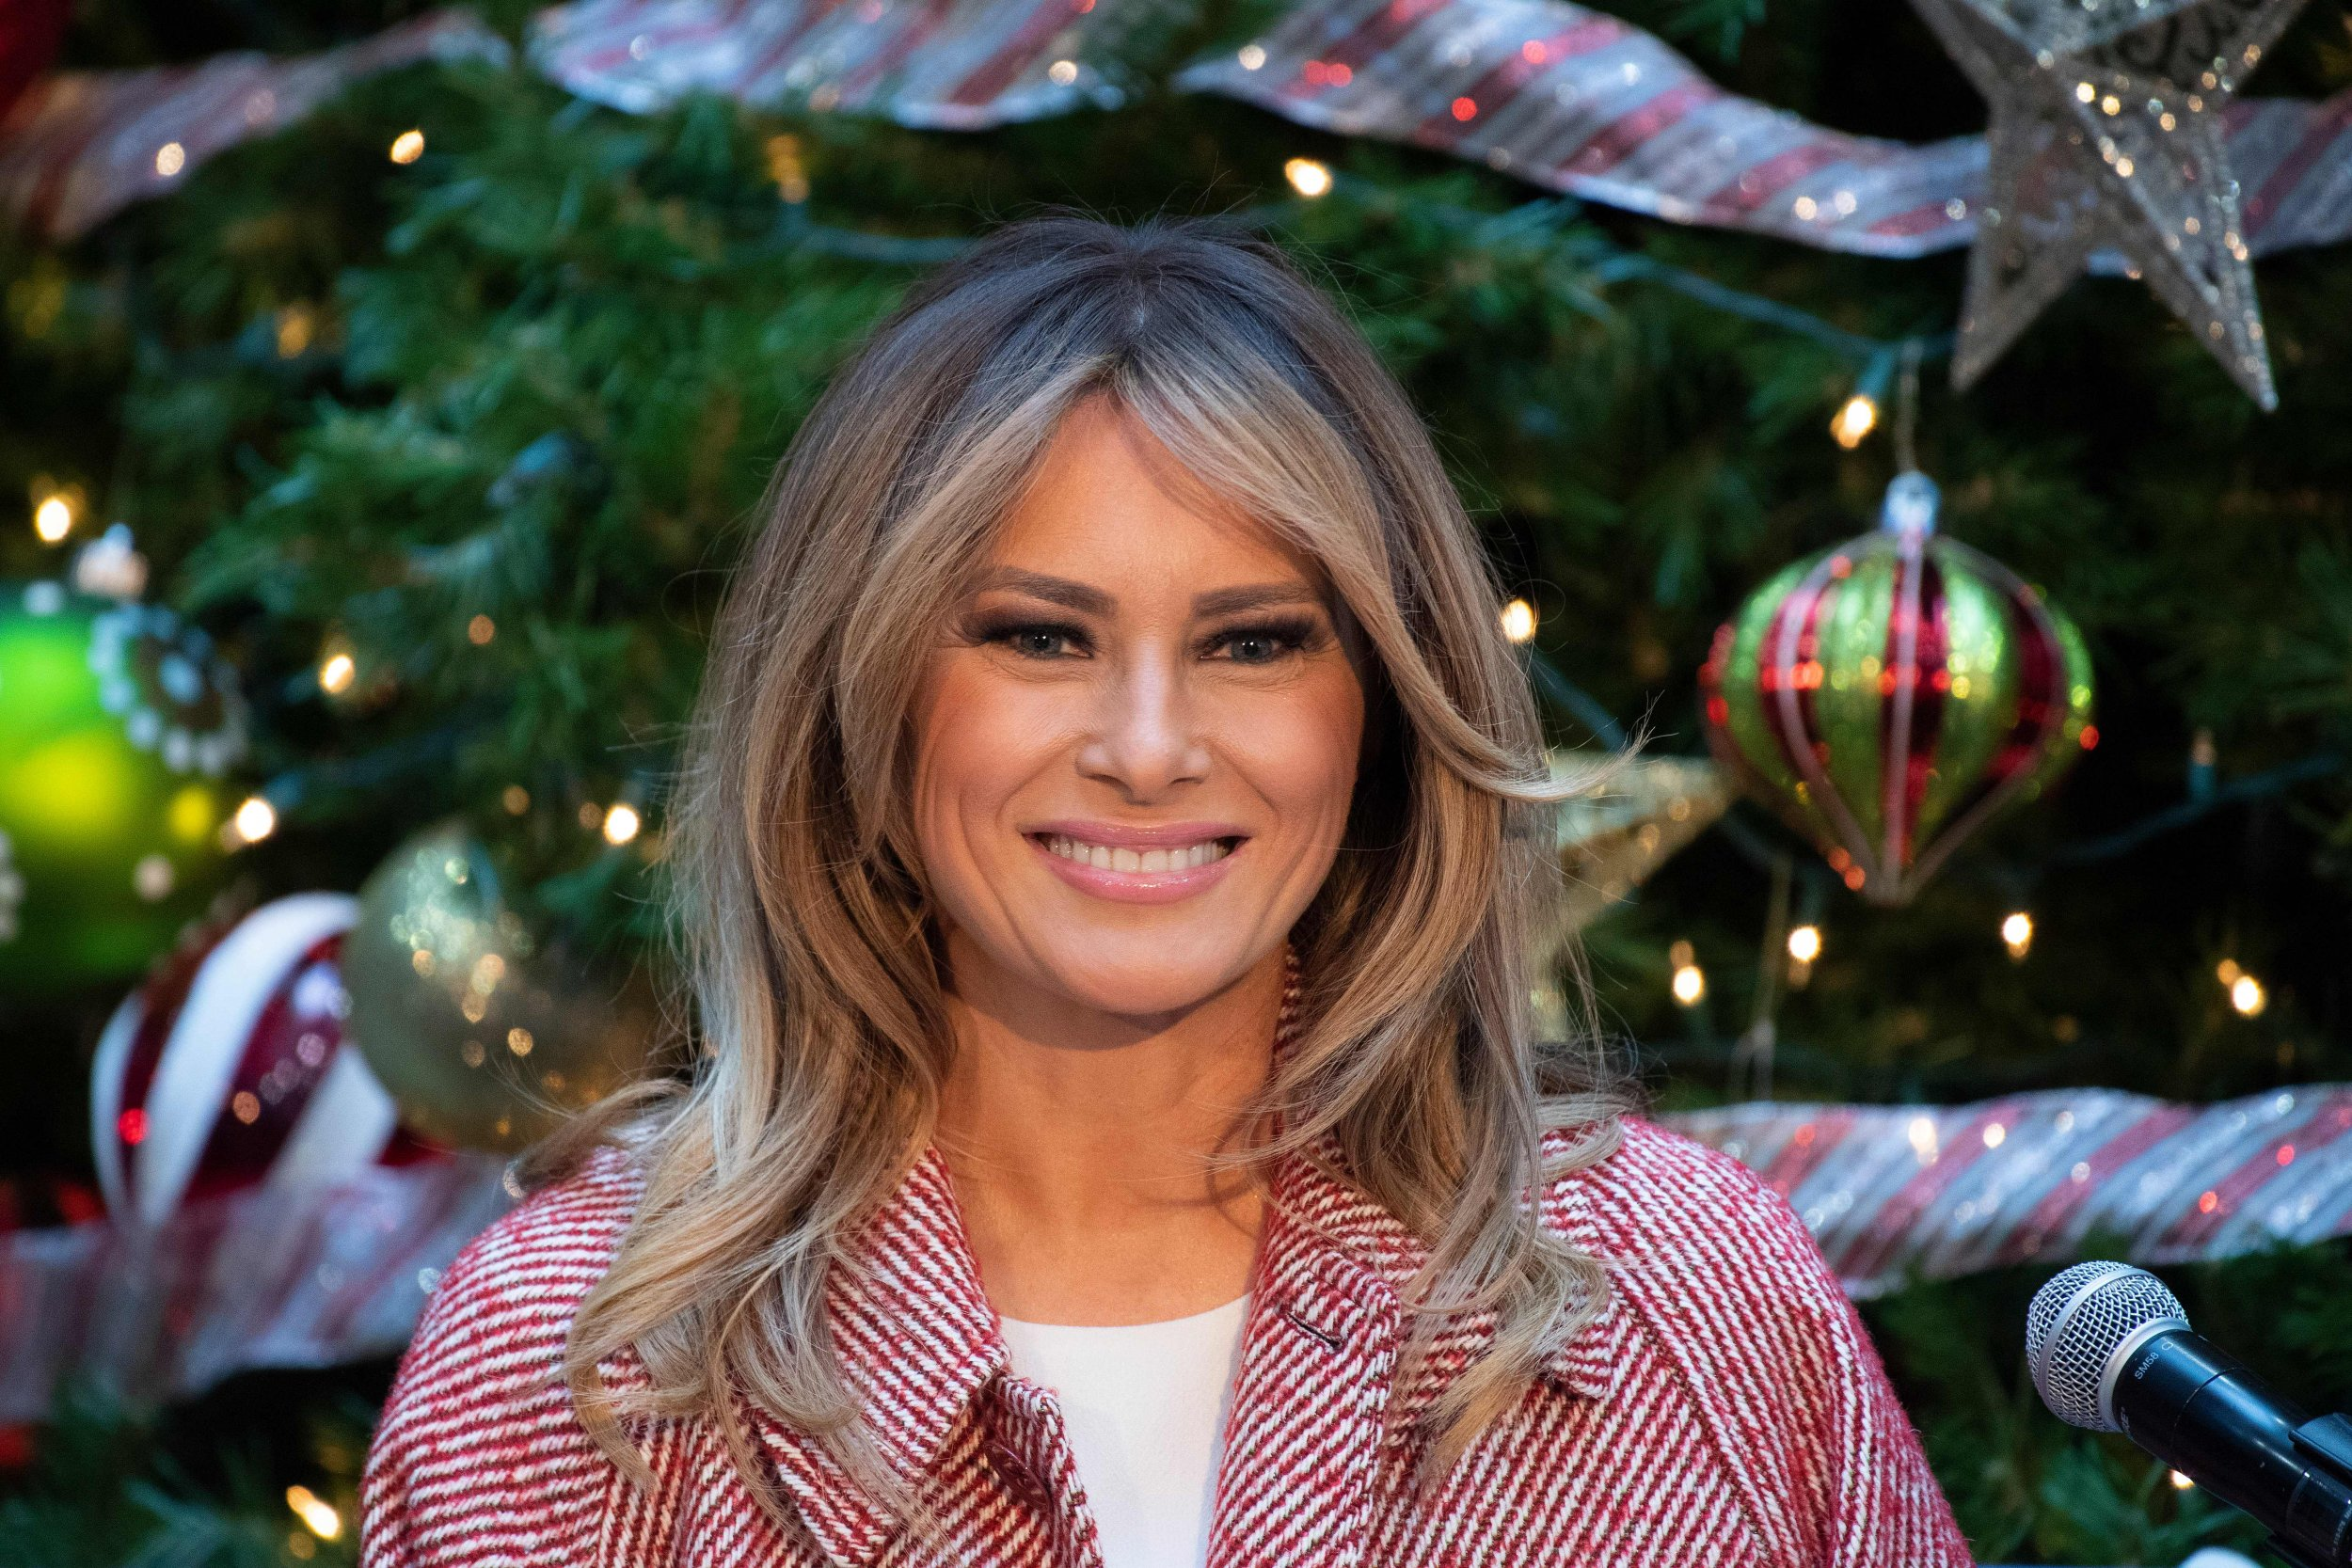 Melania Trump in 2018: Battling Affair Reports, Embracing ...